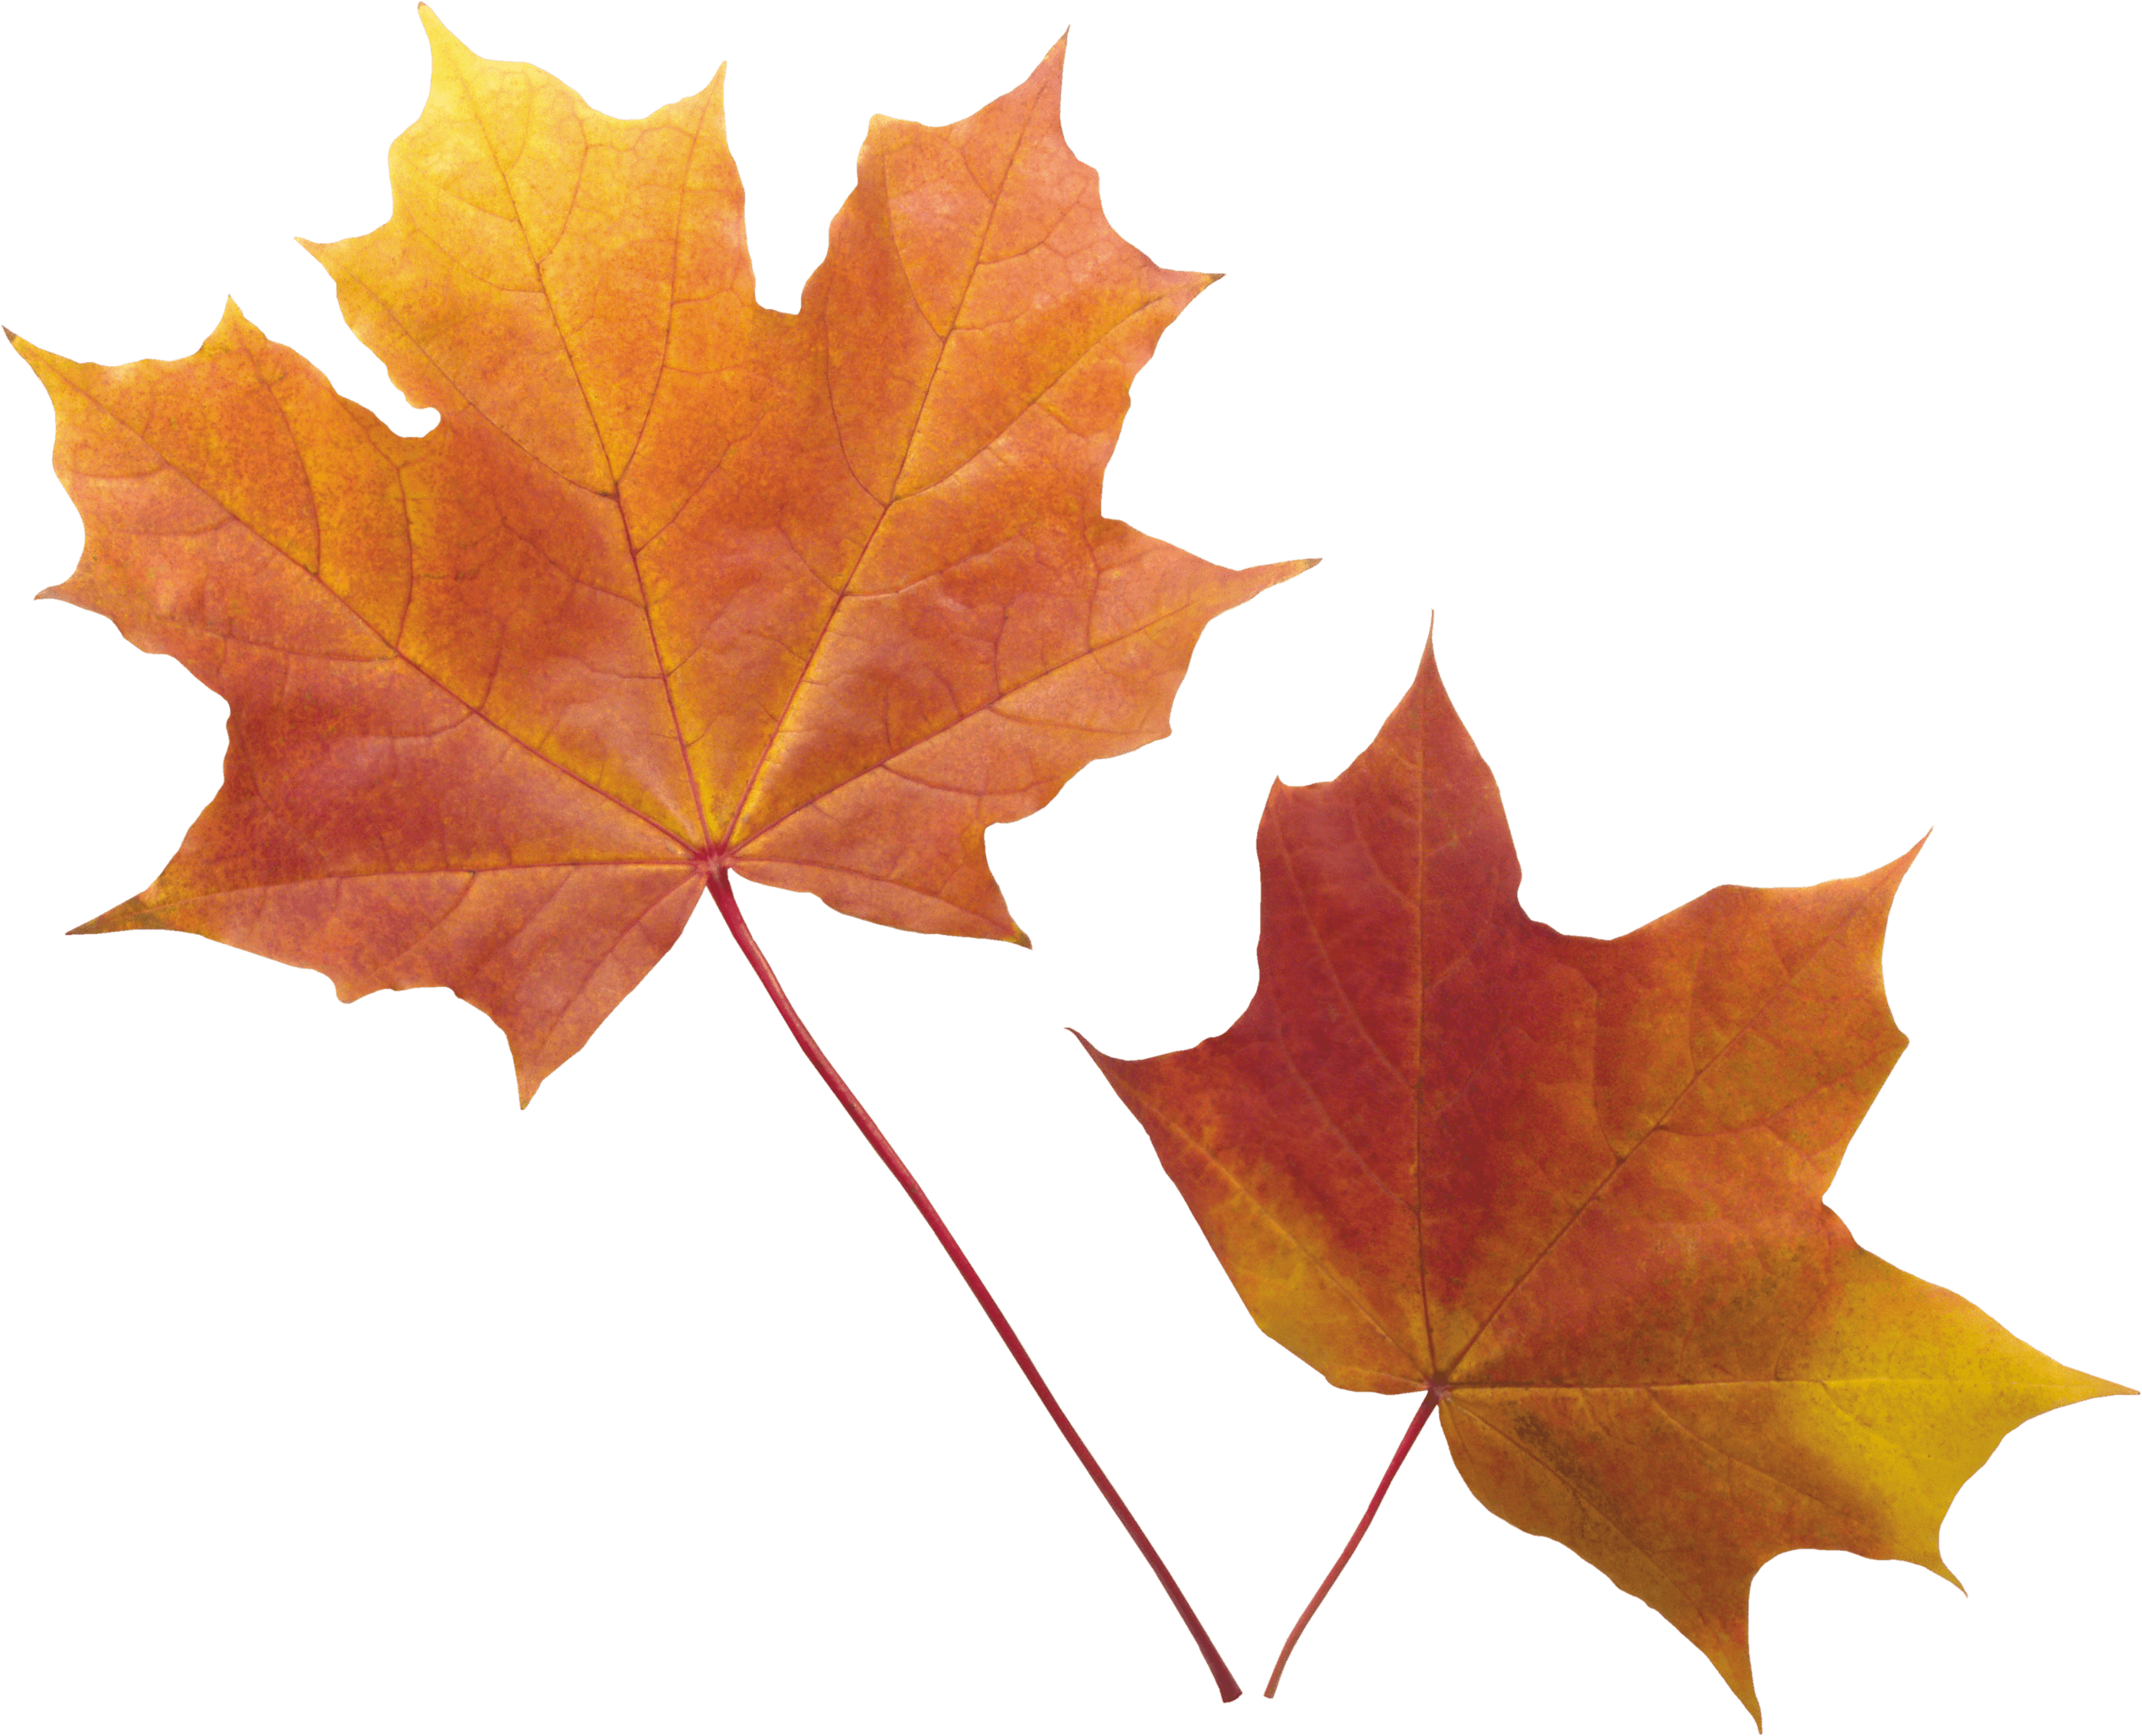 Falling Leaves Wallpaper Free Download Autumn Leaves Png Images Free Png Yellow Leaves Pictures